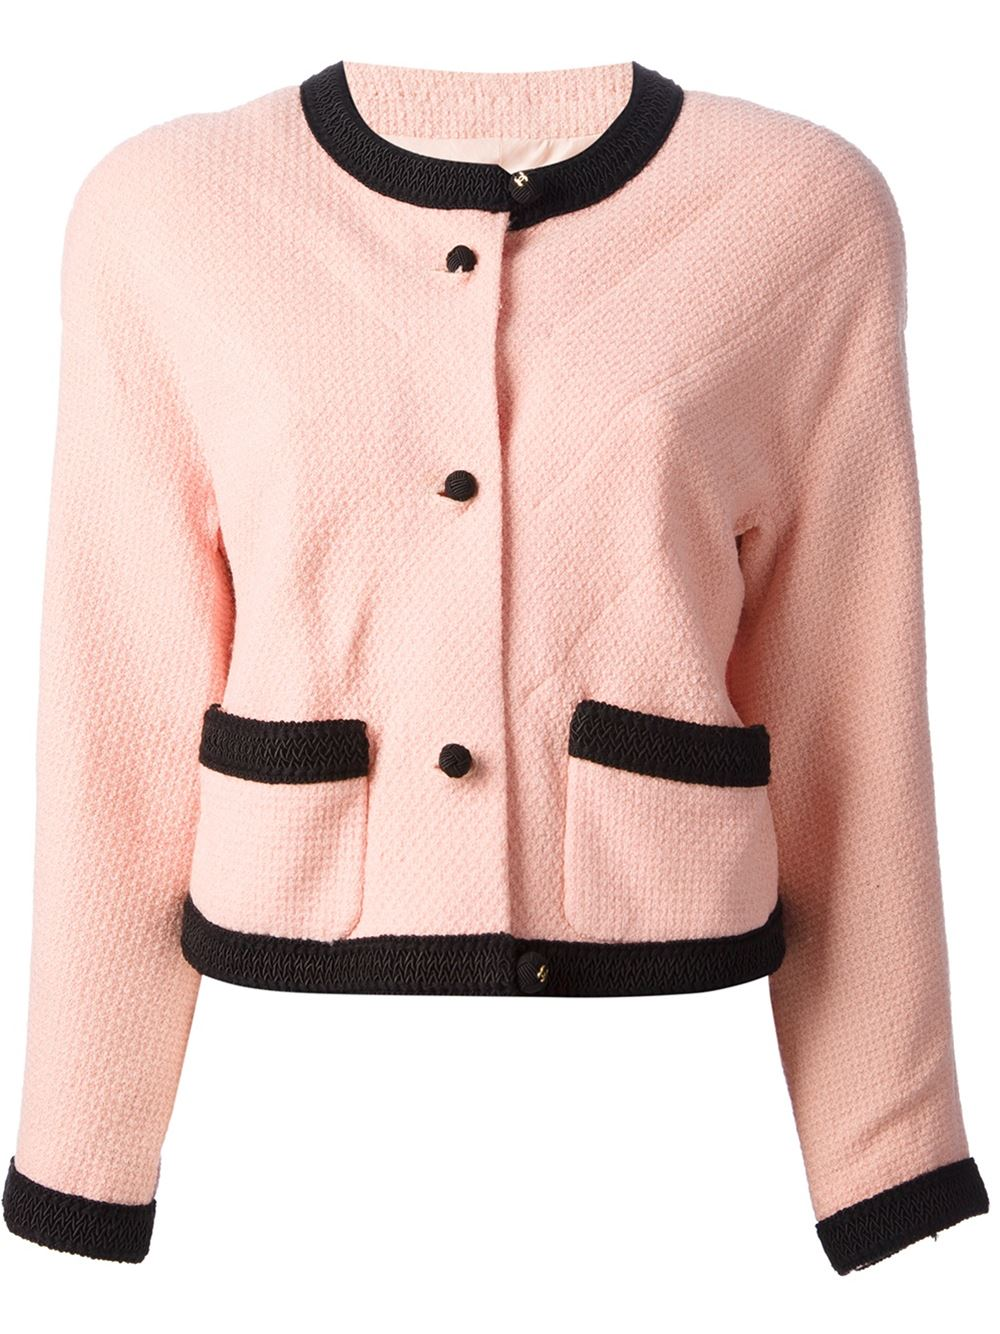 Smilar Chanel Pink Jacket